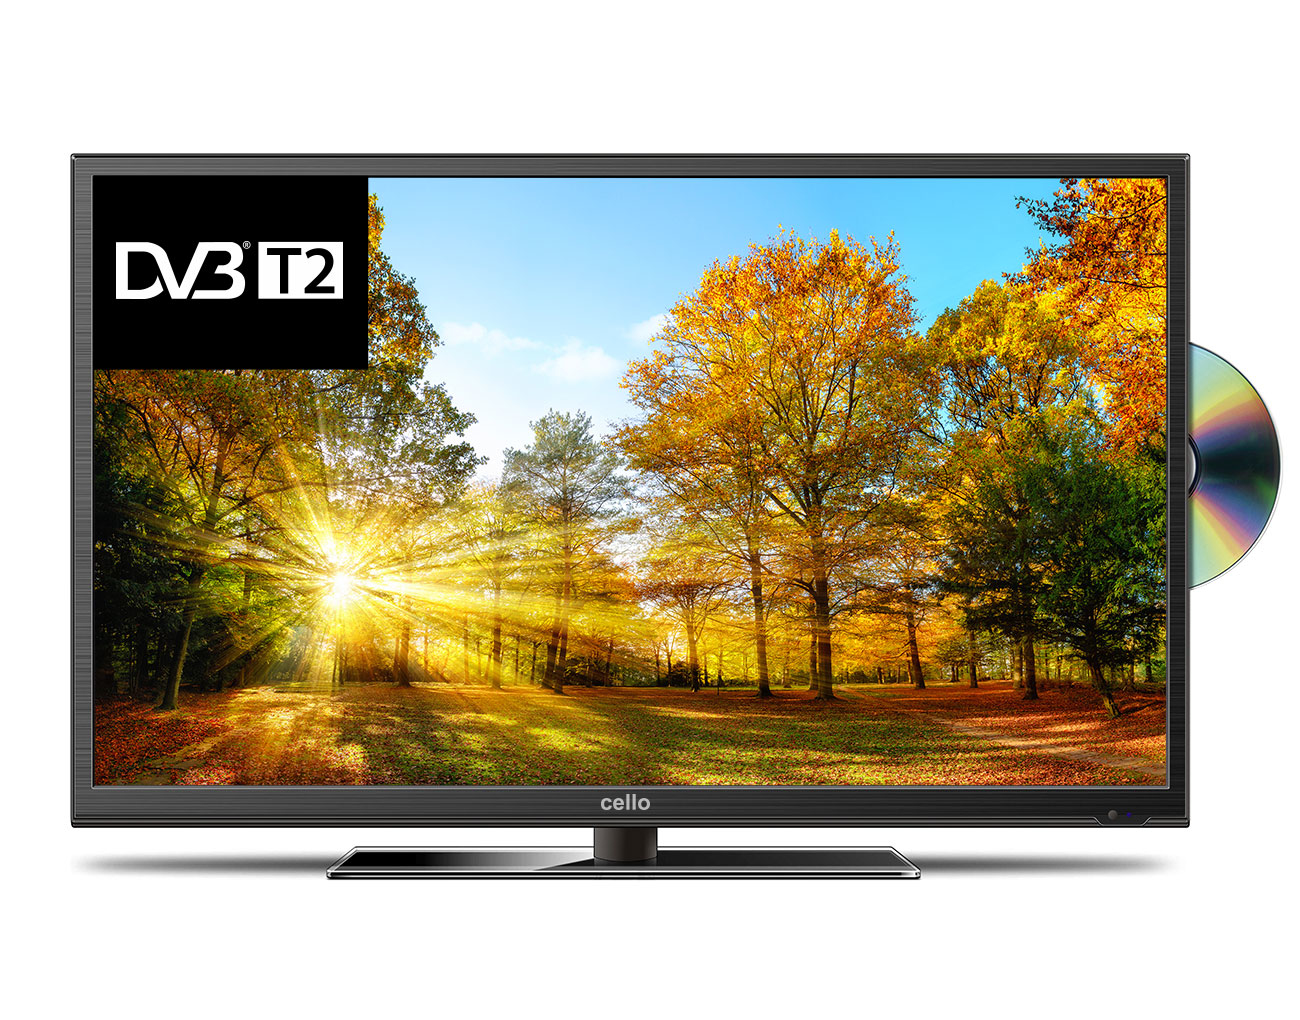 CELLO C32227FT2 LED TV 81.3 CM (32